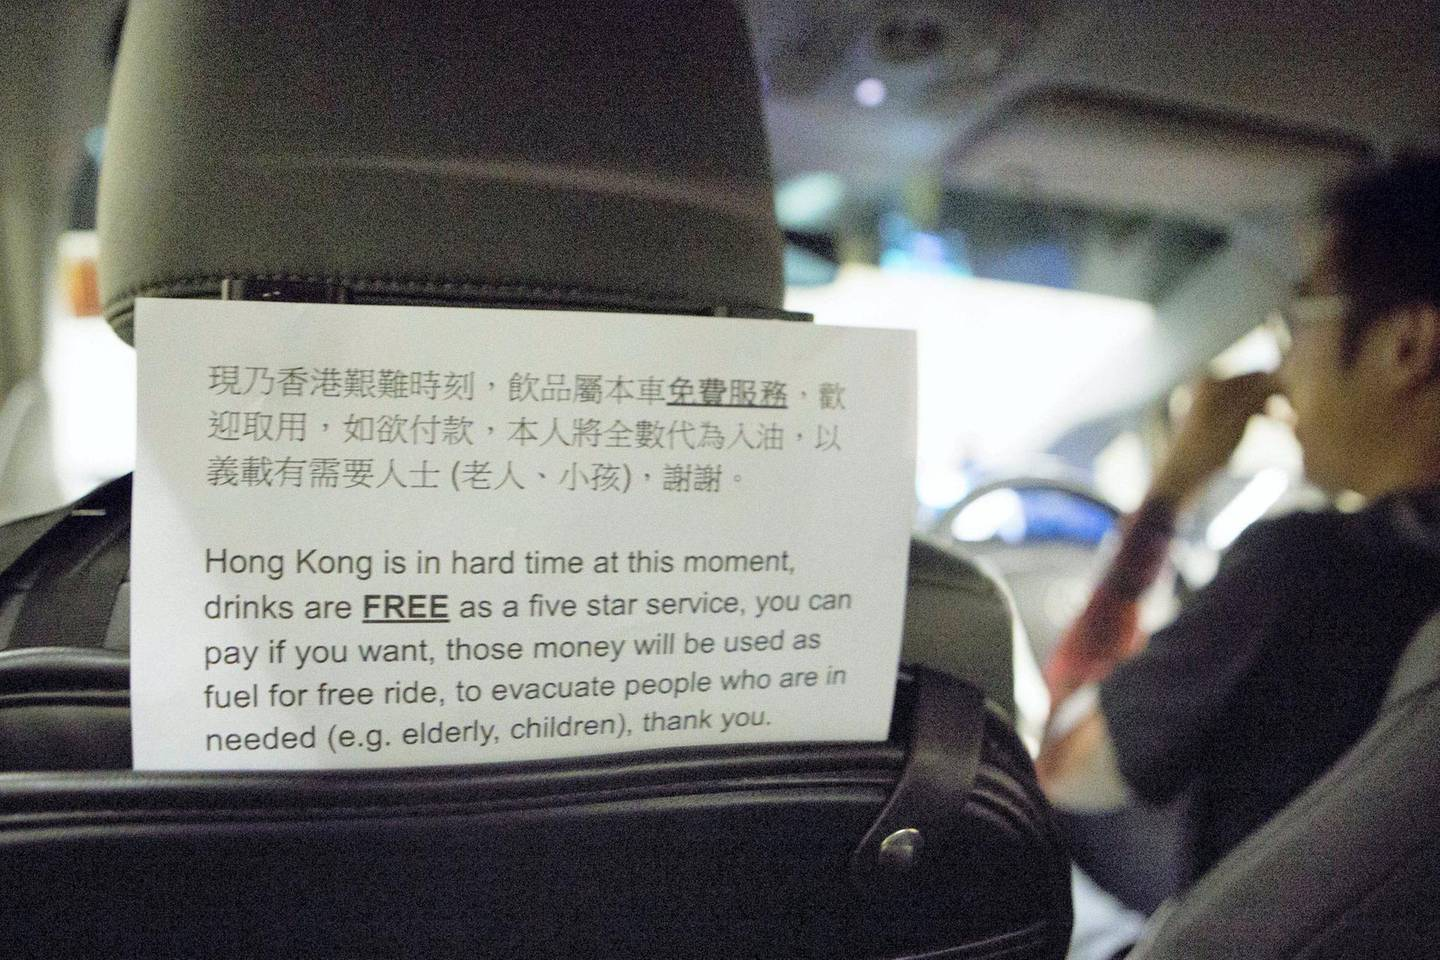 HONG KONG. SCHOOL BUS FEATURE: A sign in the back of an Uber driver's car shows that any donations and money given will go to helping fund his role in being part of the 'school bus' system. 'School Buses', are the collective name to a group of volunteers, including Chen, who offer free transport for people who need help getting away from the protests safely.